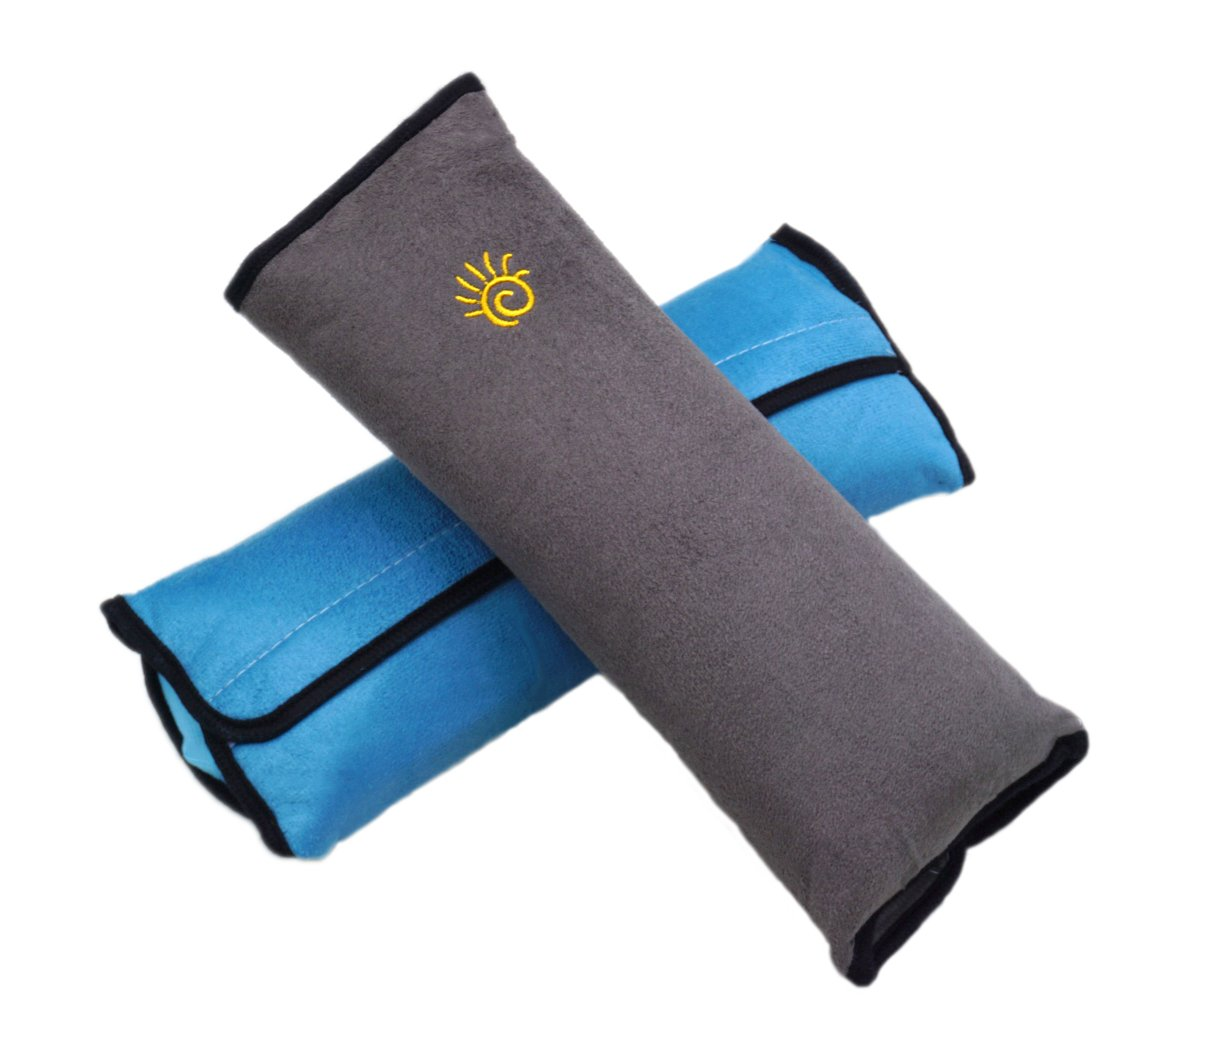 MountAir Children Seatbelt Pillow (2 Pack) -Universal Car Seat Belt Cushion Pillow with Adjustable Fit and Premium Support for Neck and Shoulder in the Car While Sleeping for Kids & Adults(Gray,Blue)